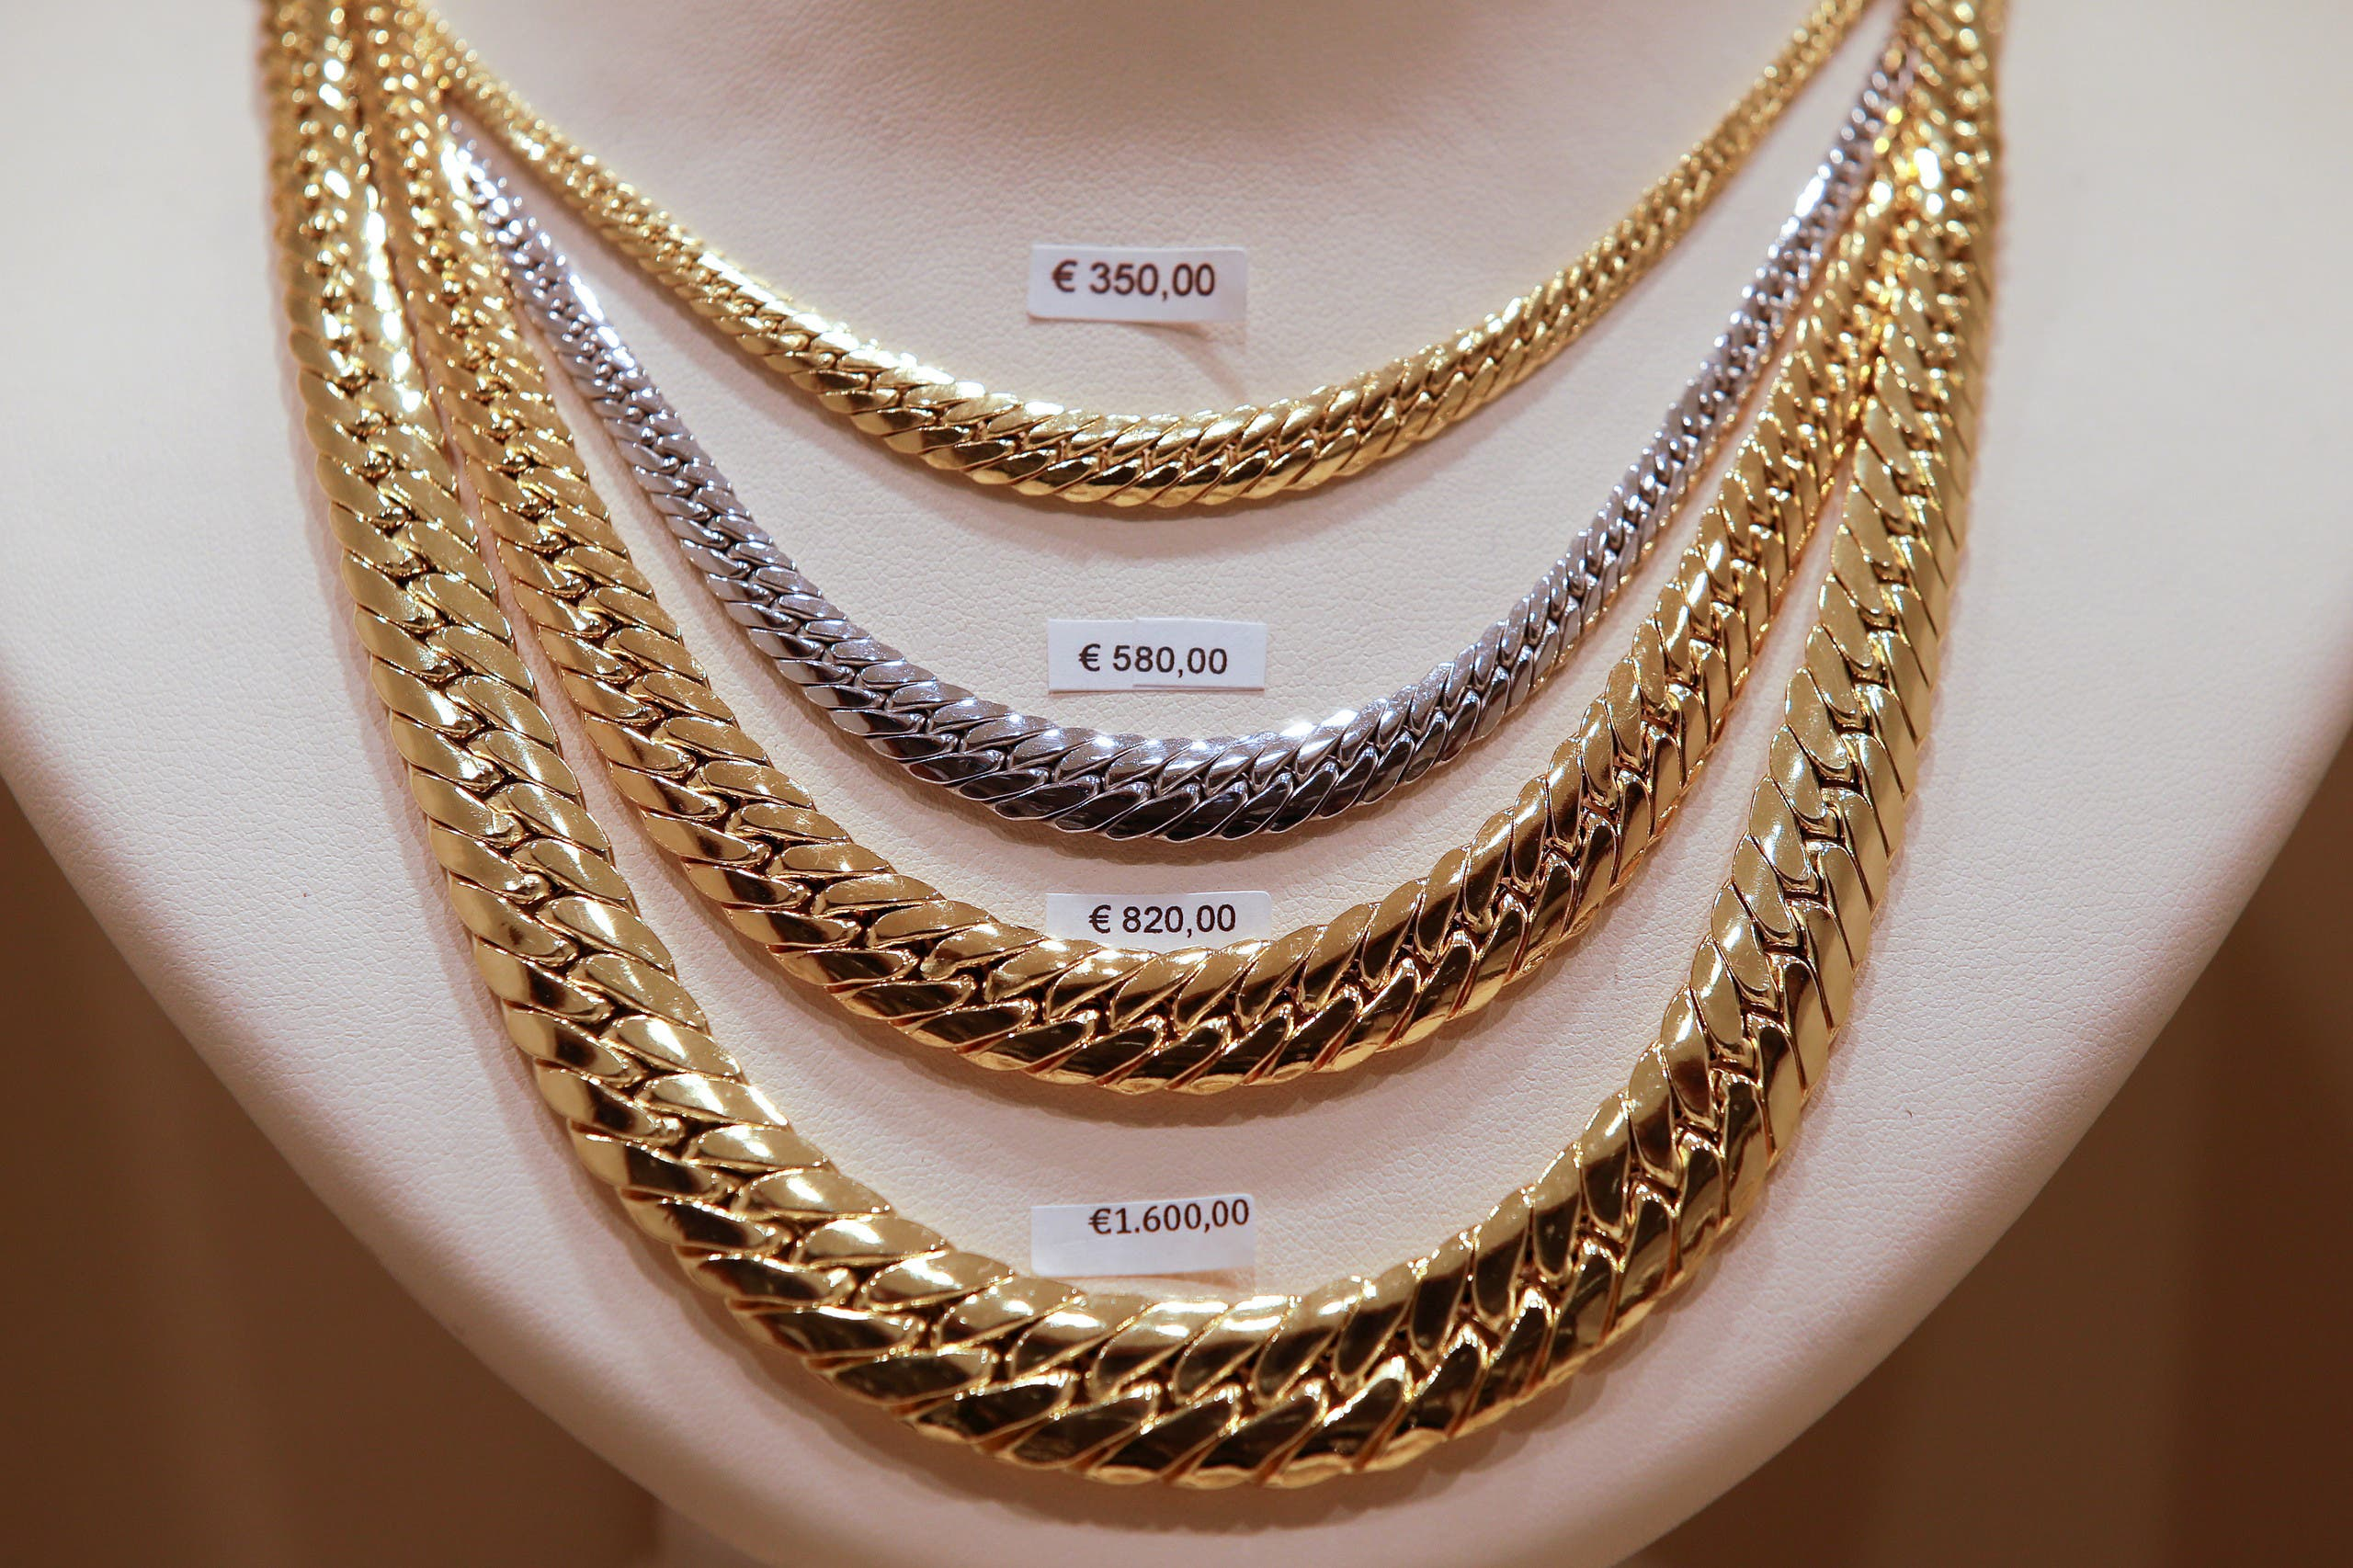 Gold necklaces are seen in a jewelry shop in downtown Rome, Italy, December 11, 2017. (Reuters)